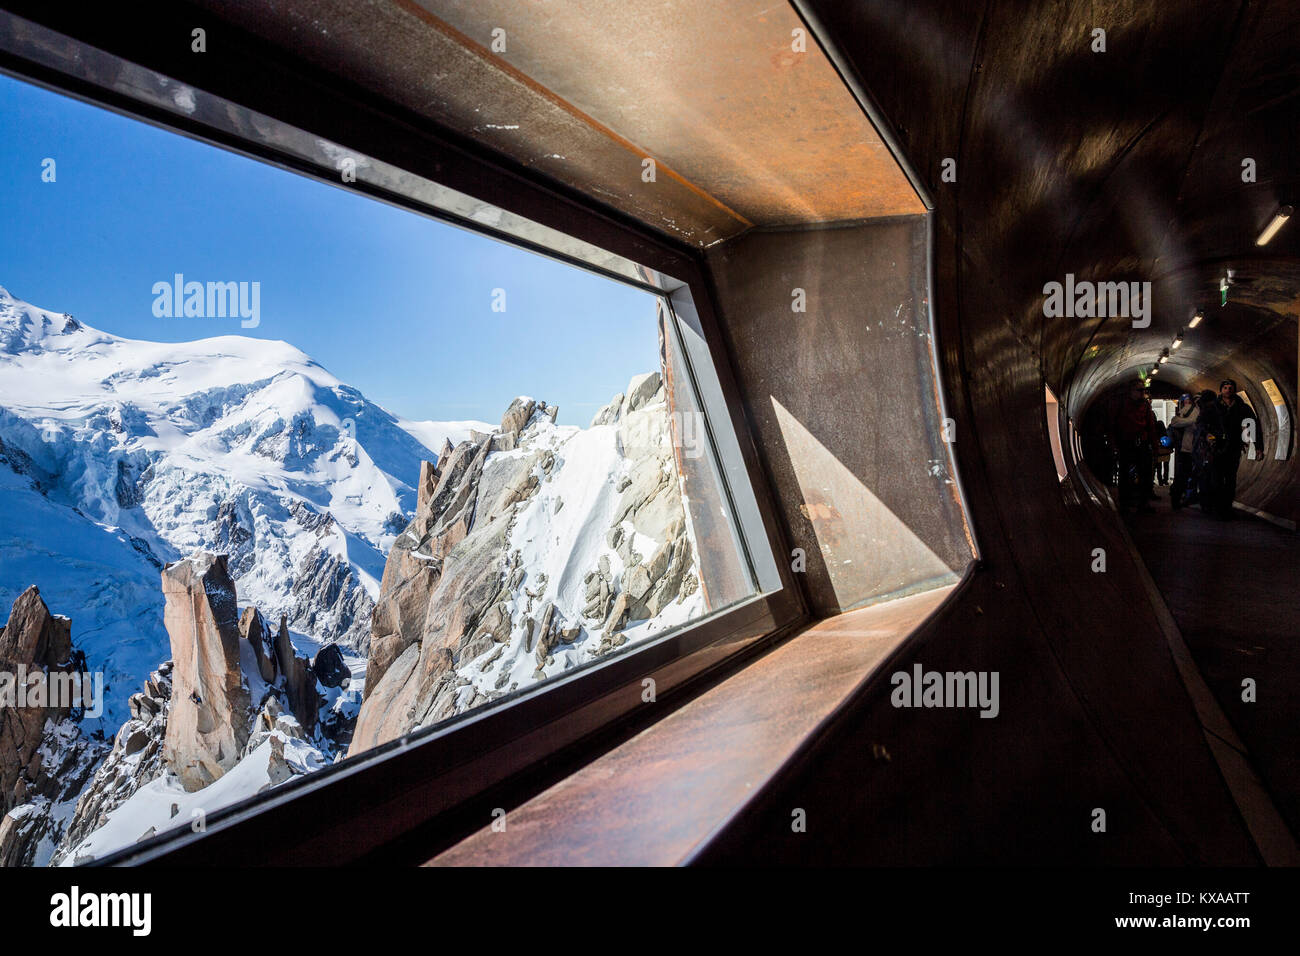 View from inside tube that allows tourists to go around Aiguille du Midi peak in French Alps, Chamonix Mont-Blanc, - Stock Image